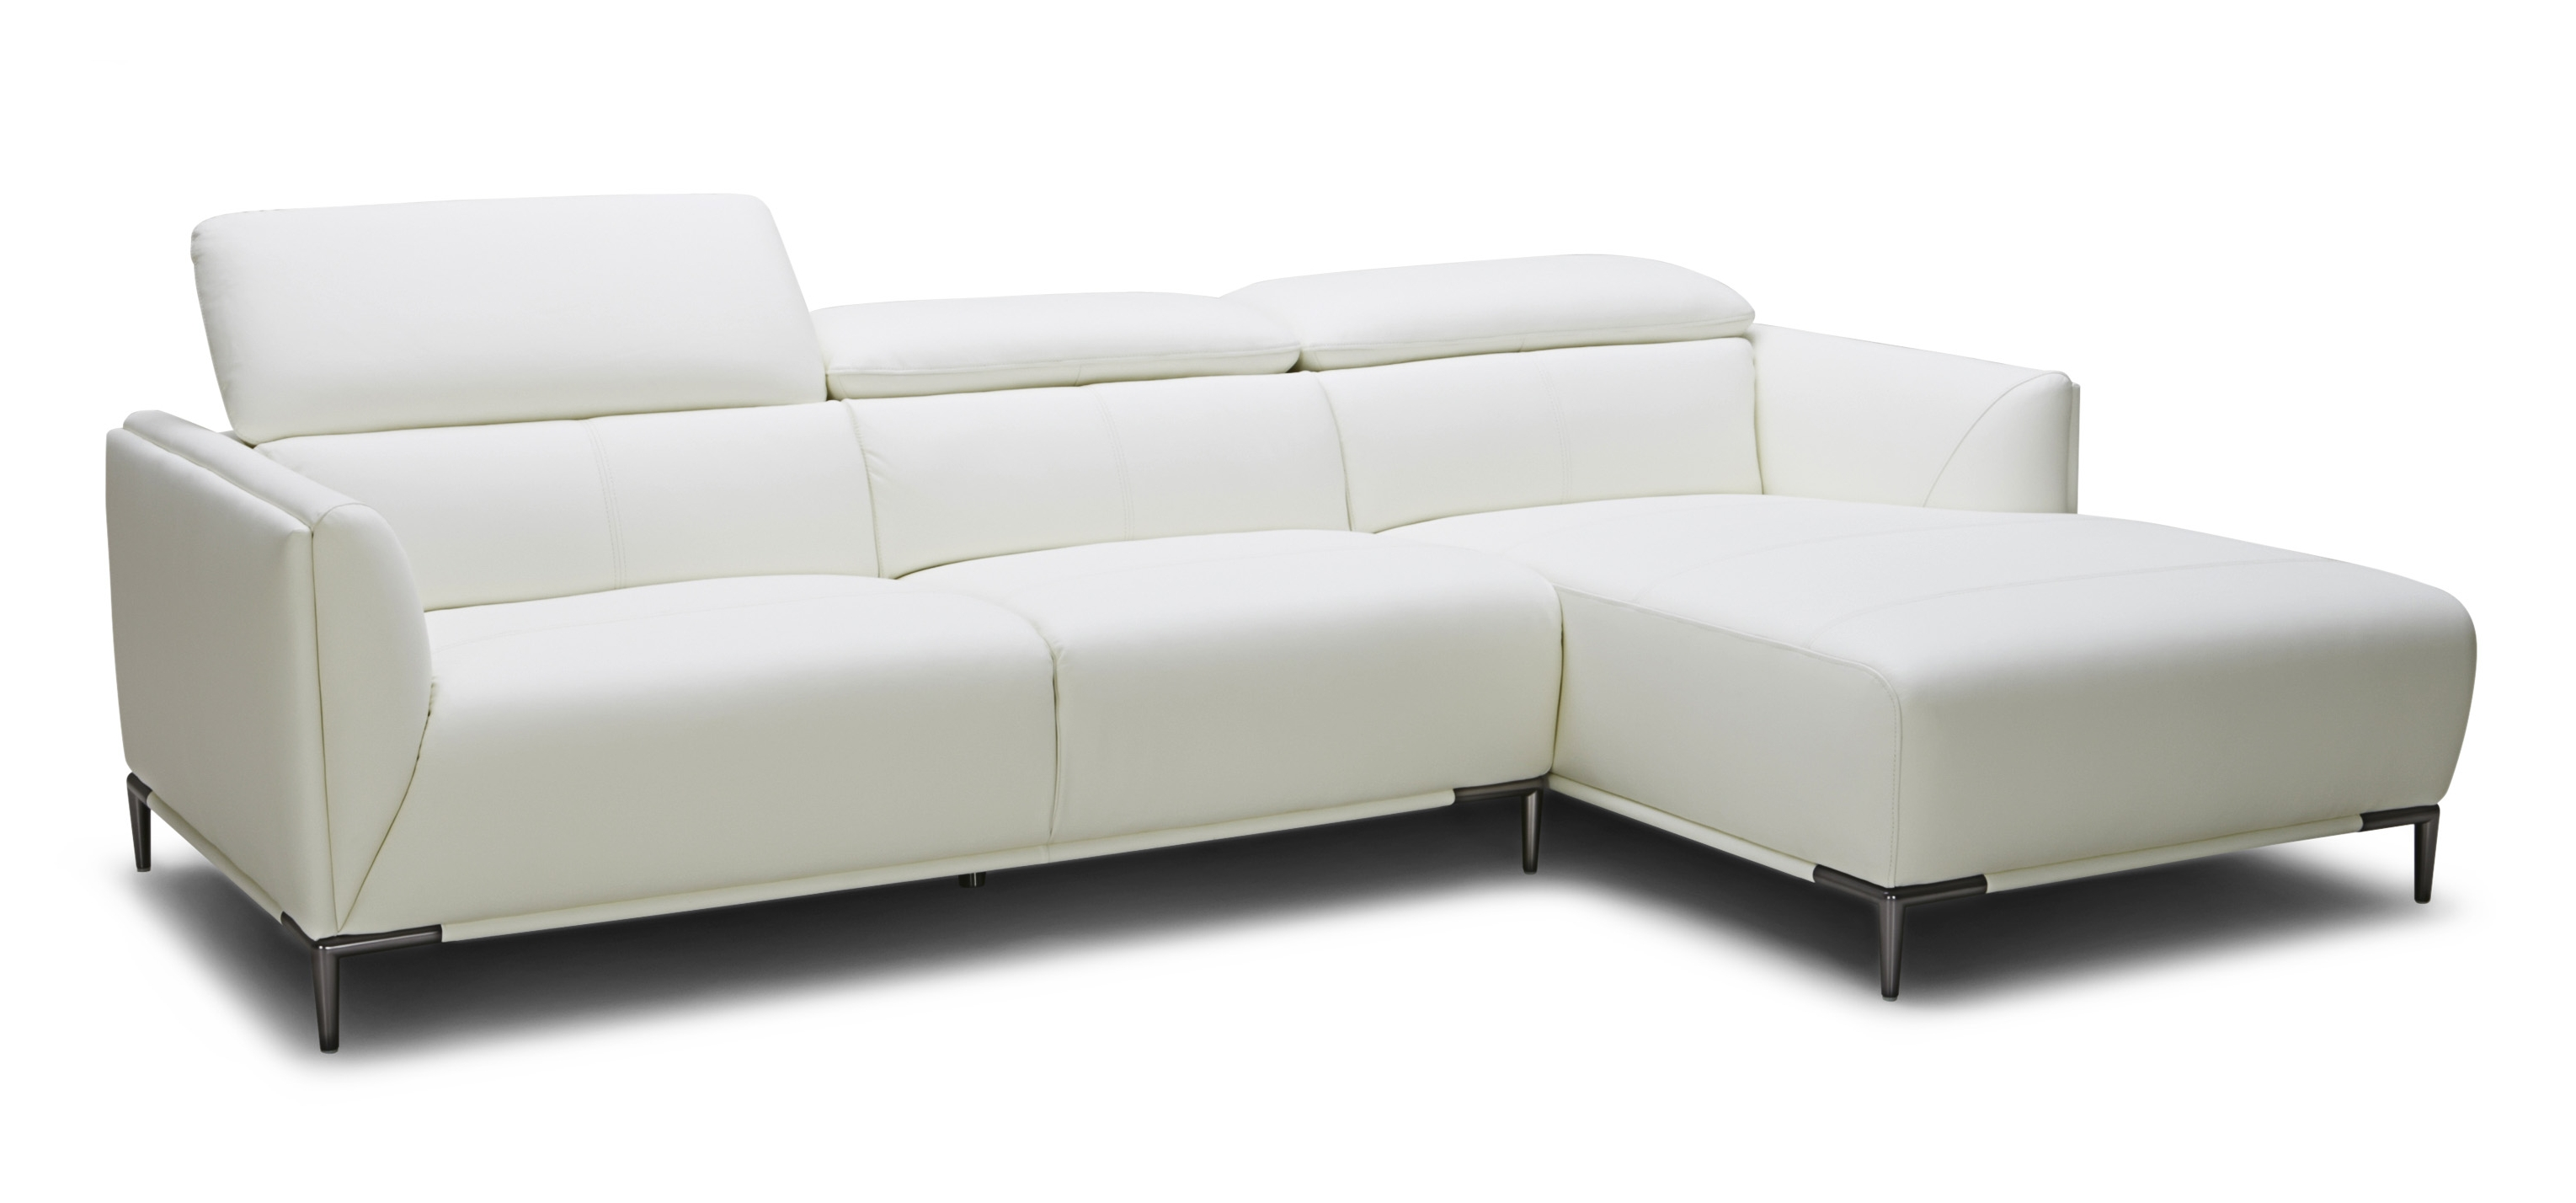 Dezign Furniture With Regard To Most Up To Date White Leather Chaise Lounges (View 3 of 15)